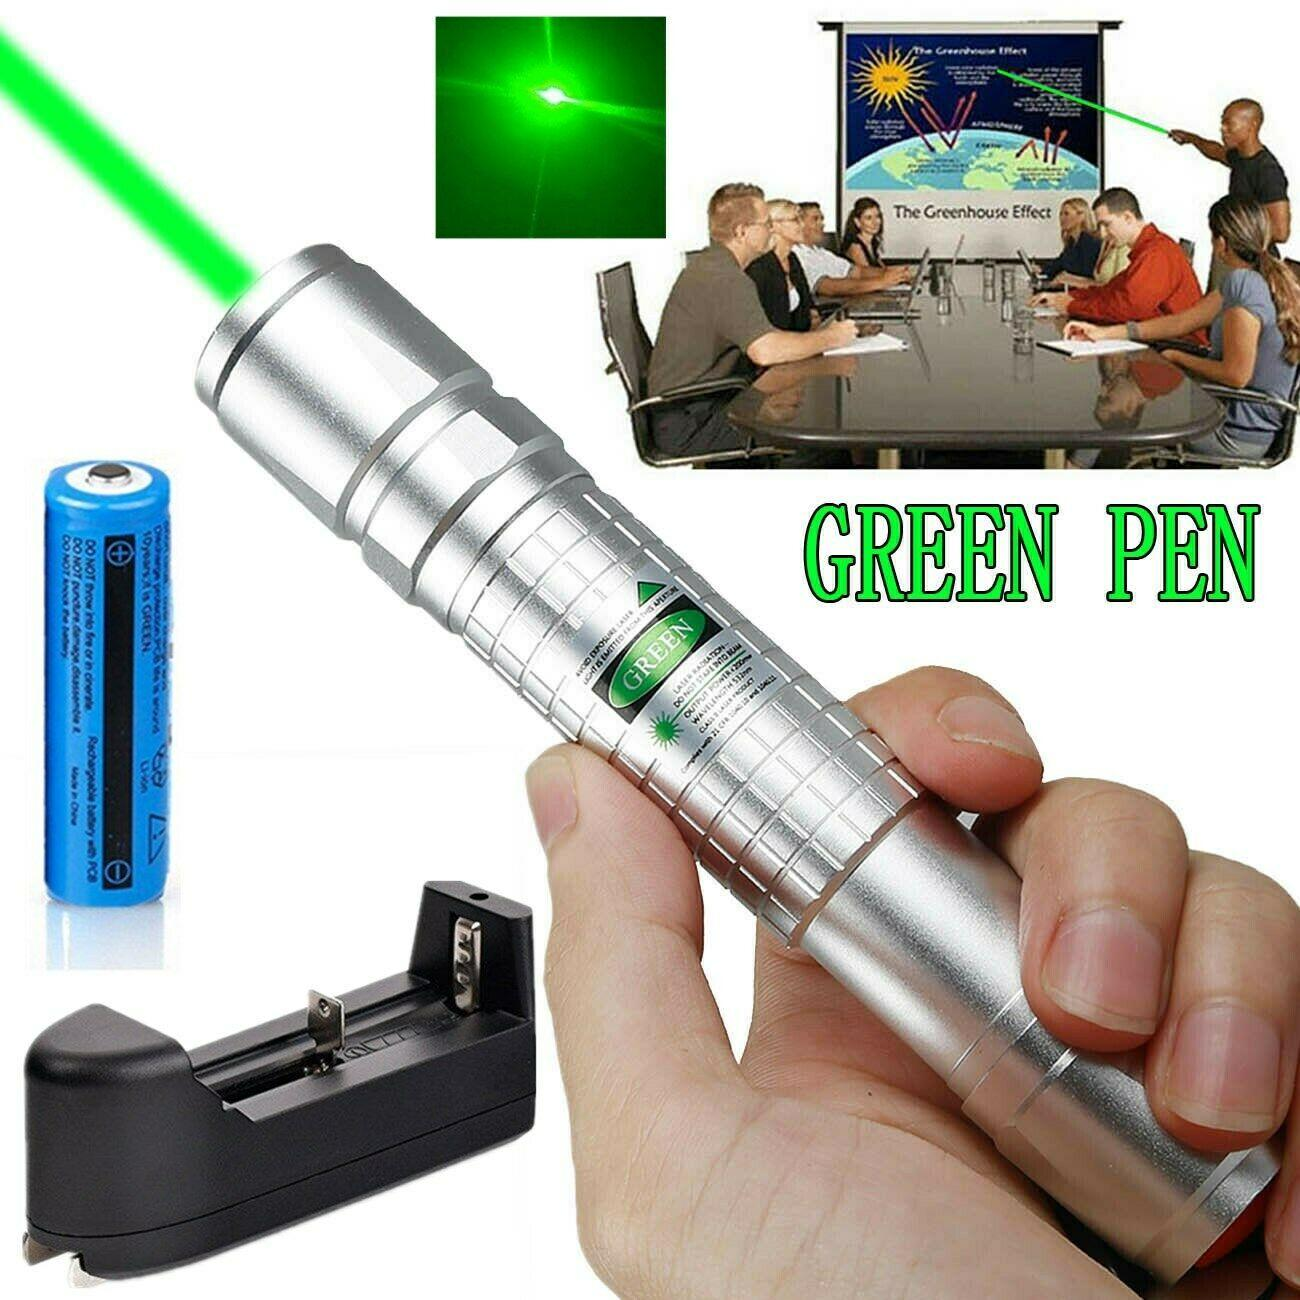 Powerful Green Laser Pen Pointer 1mw 532nm Visible Beam Light Green Laser Pen Cat Toy + 18650 Battery + Charger